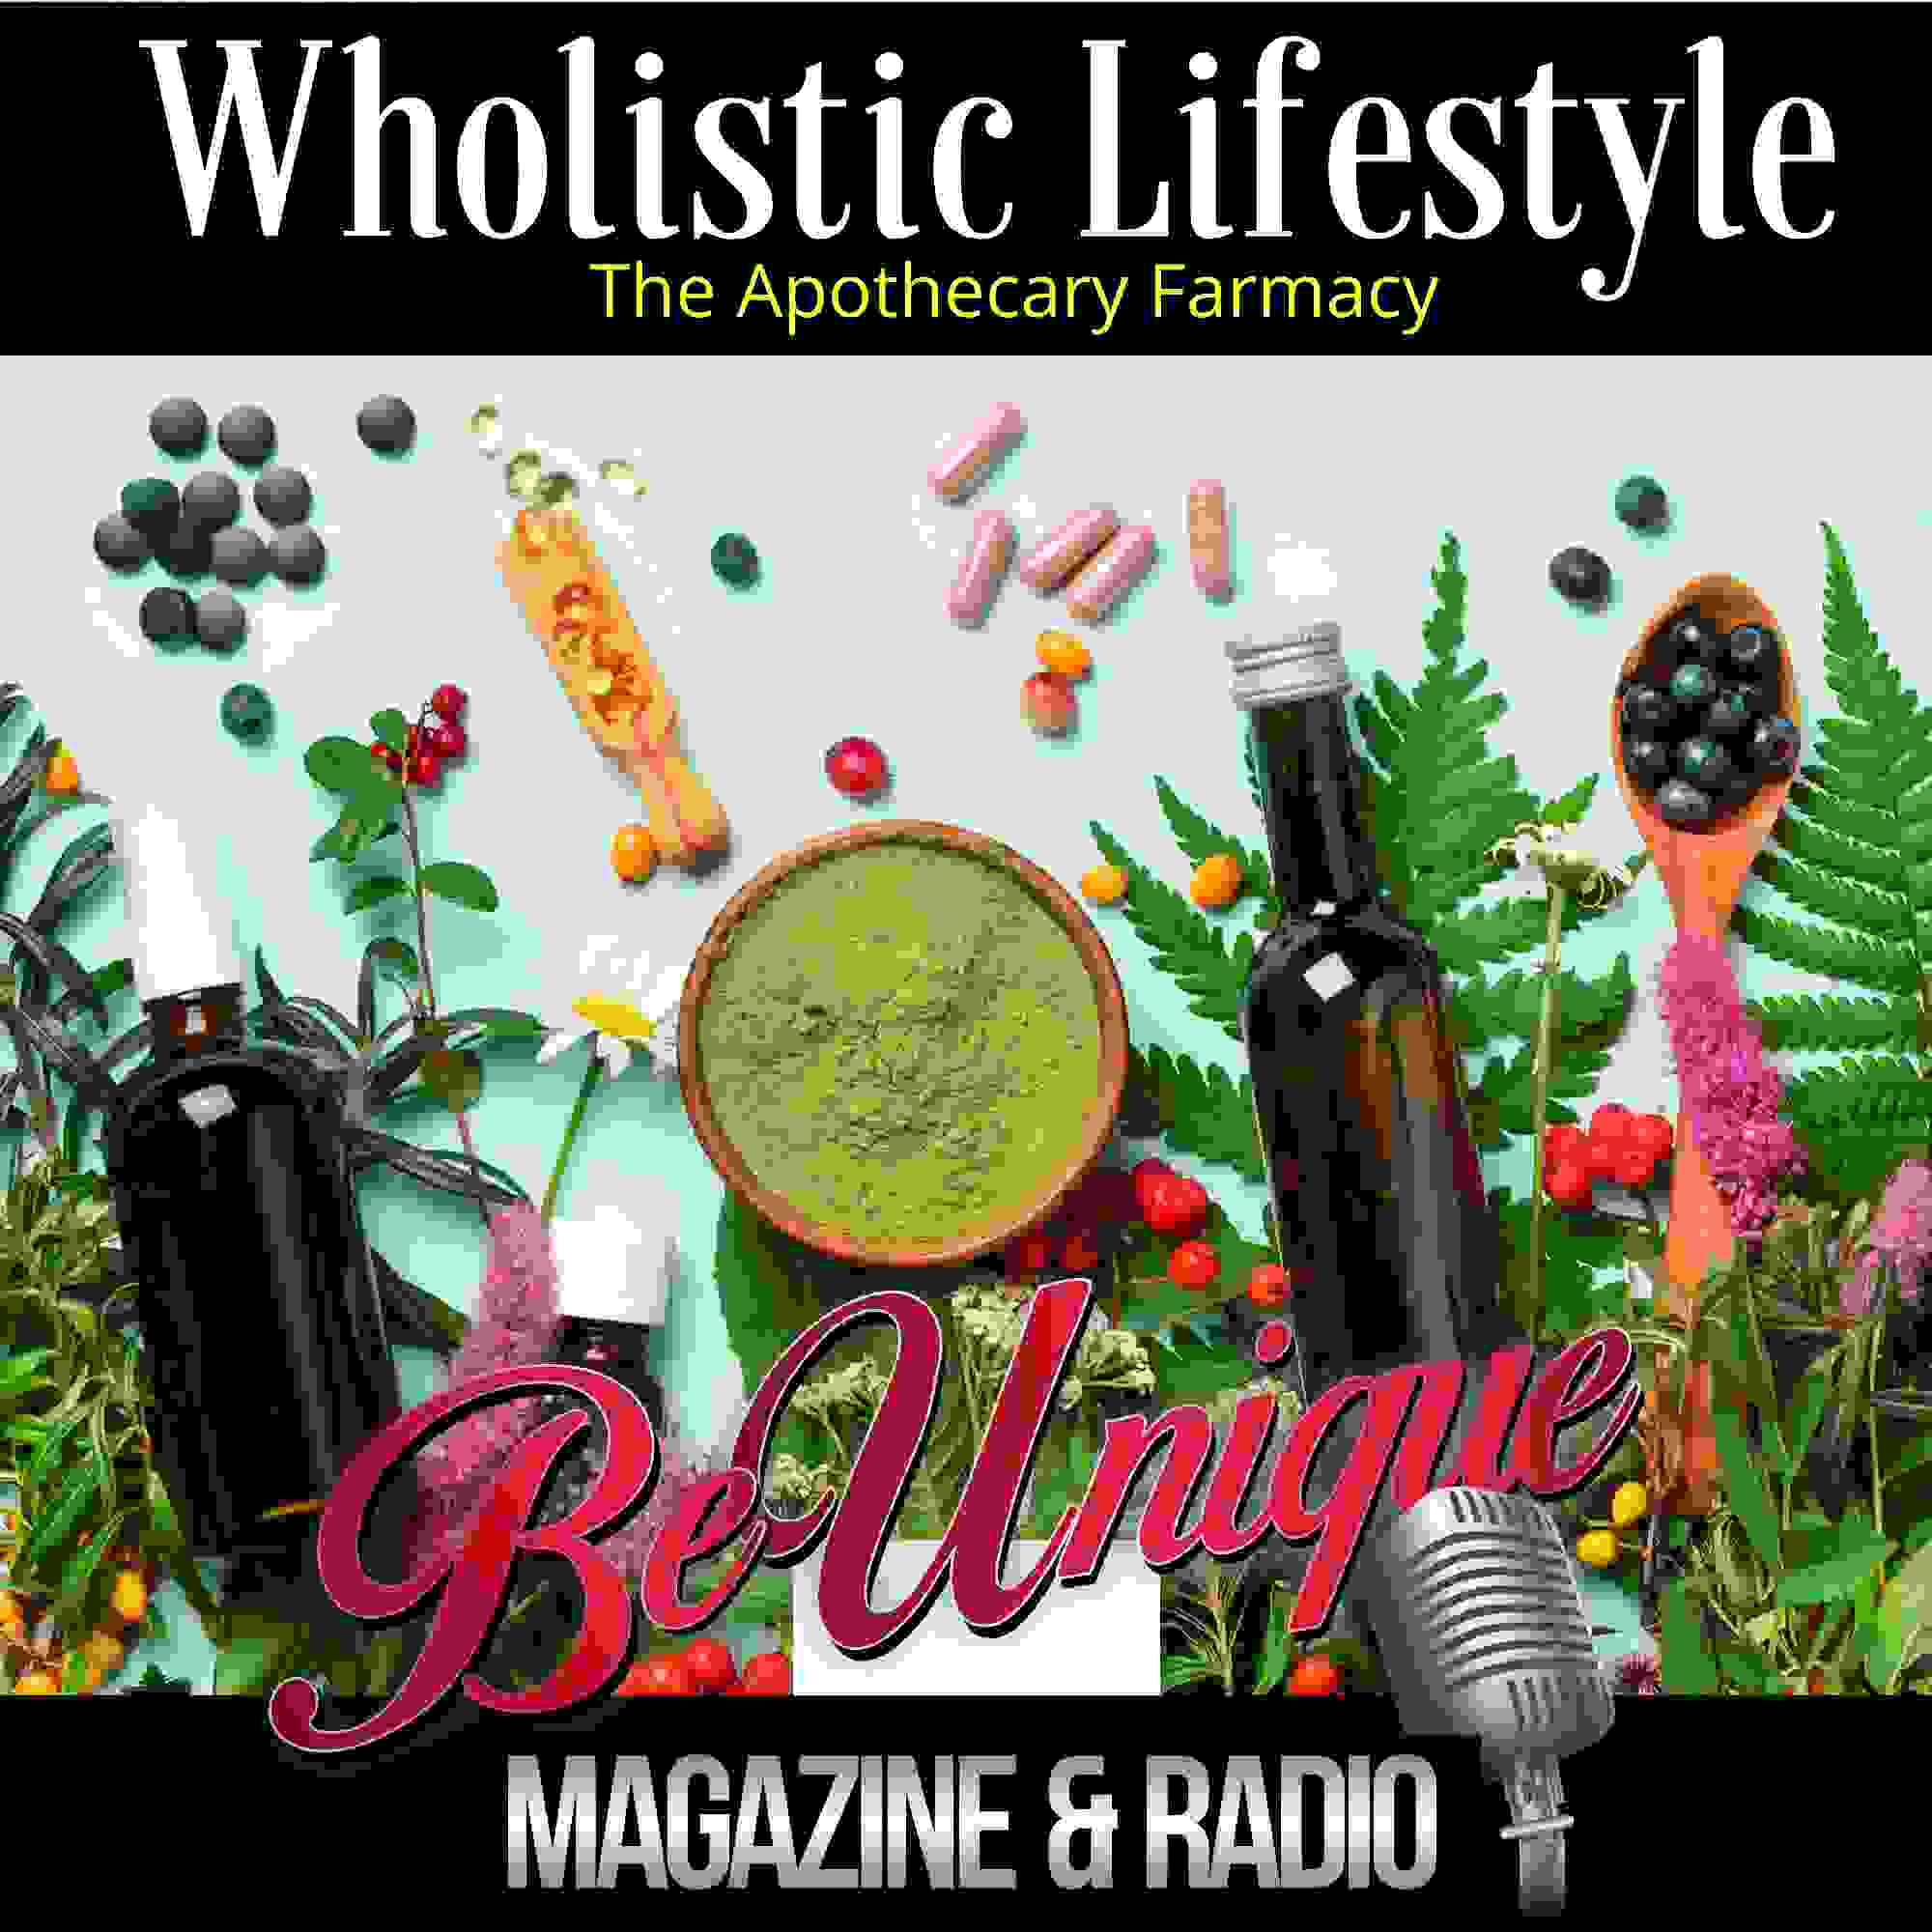 BeUnique Magazine & Radio Show